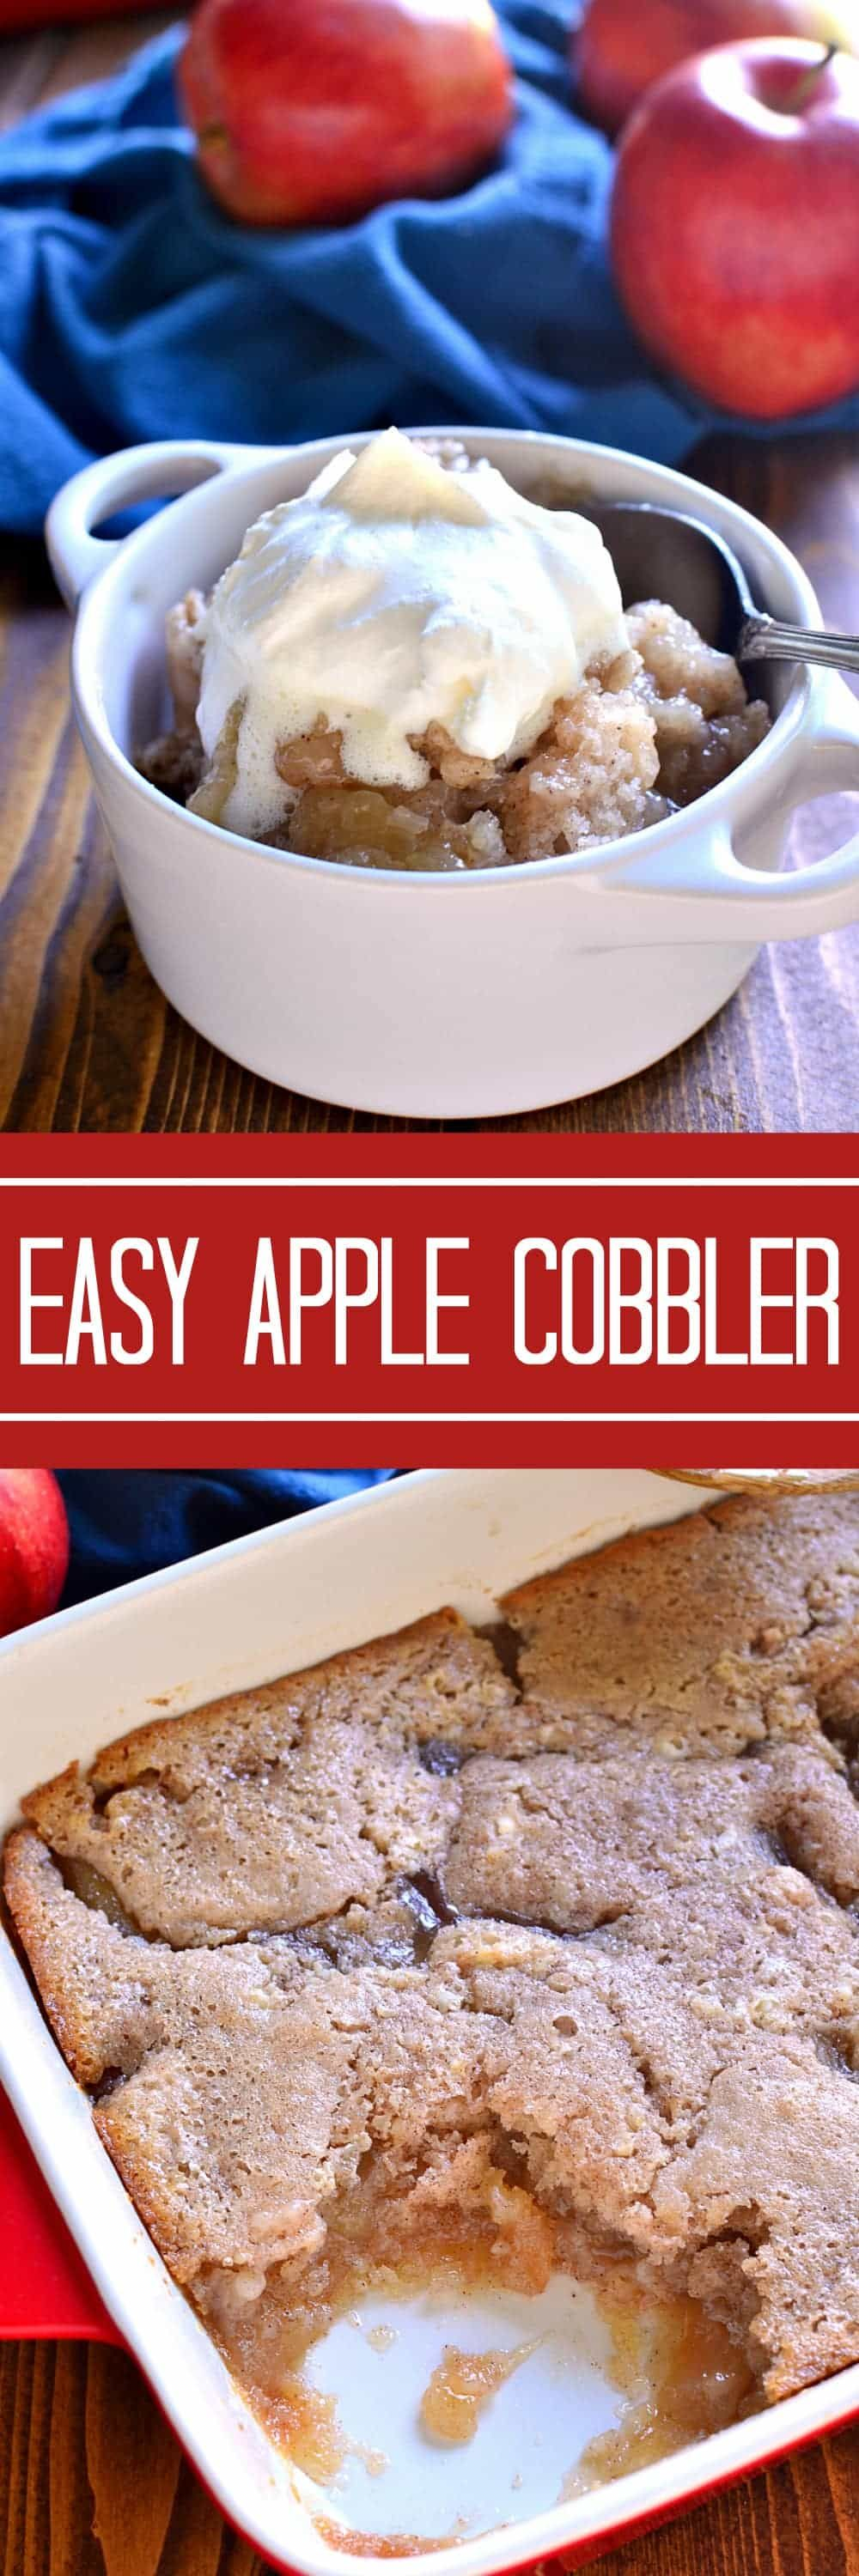 This Easy Apple Cobbler is made with just 6 ingredients